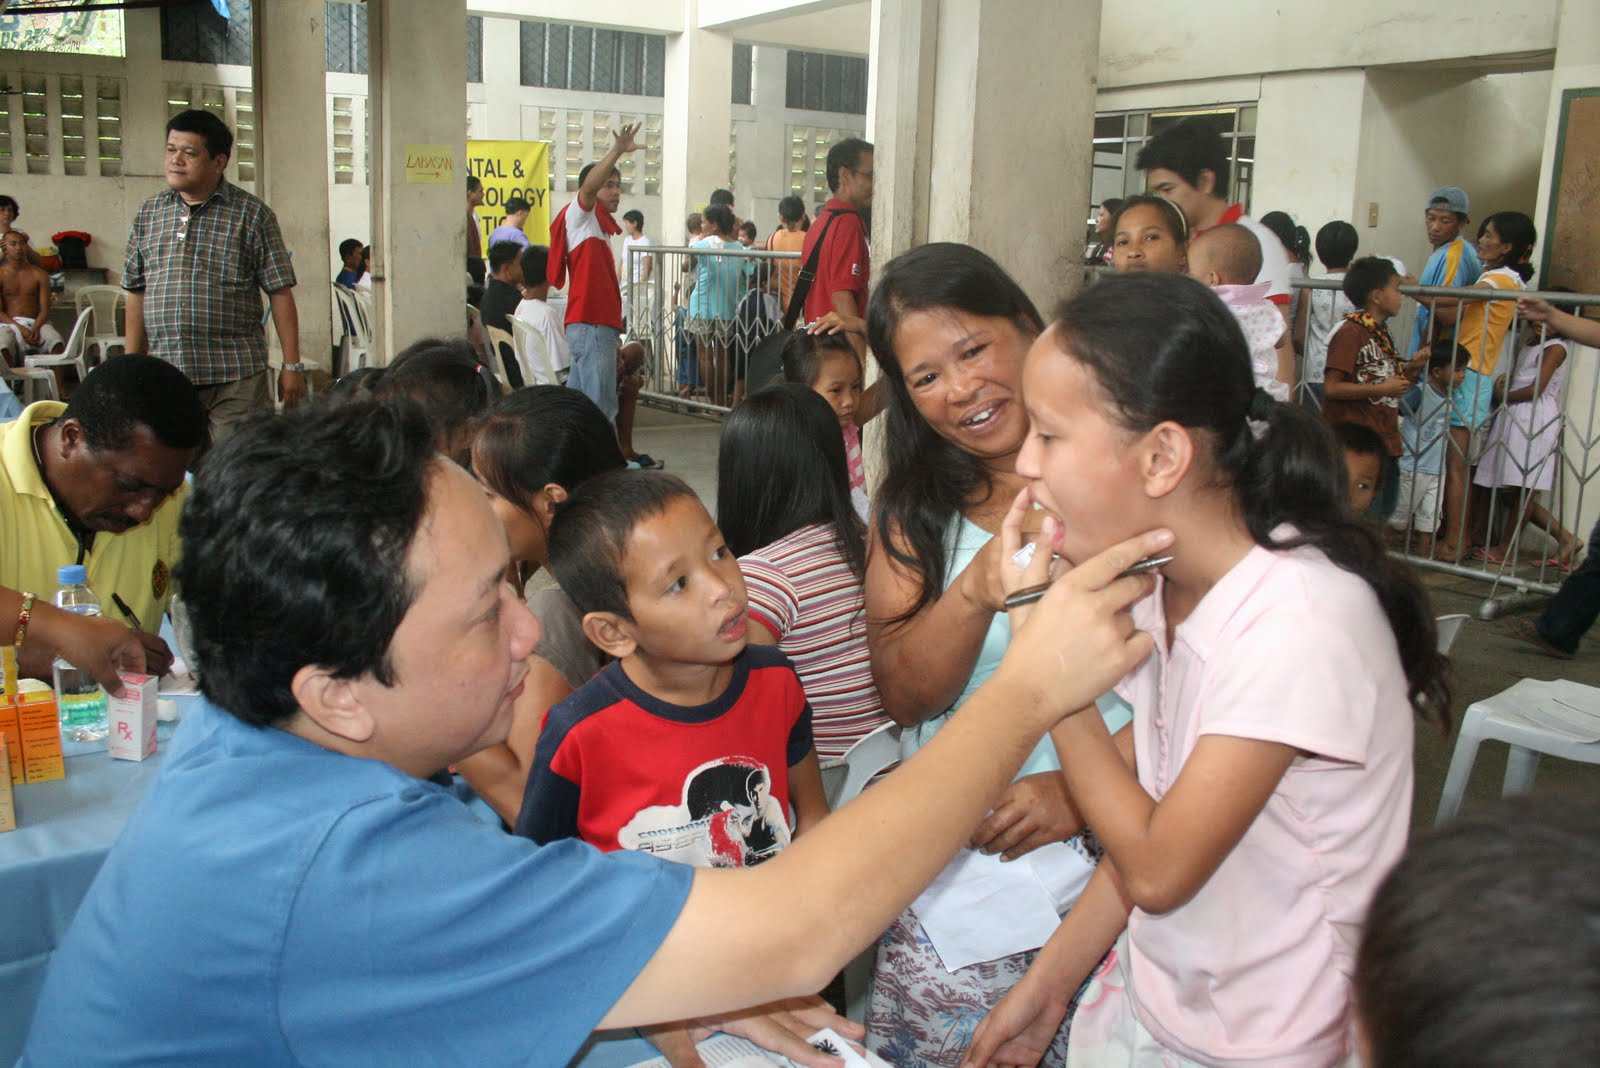 NFGB MEDICAL MISSION IN PICTURES